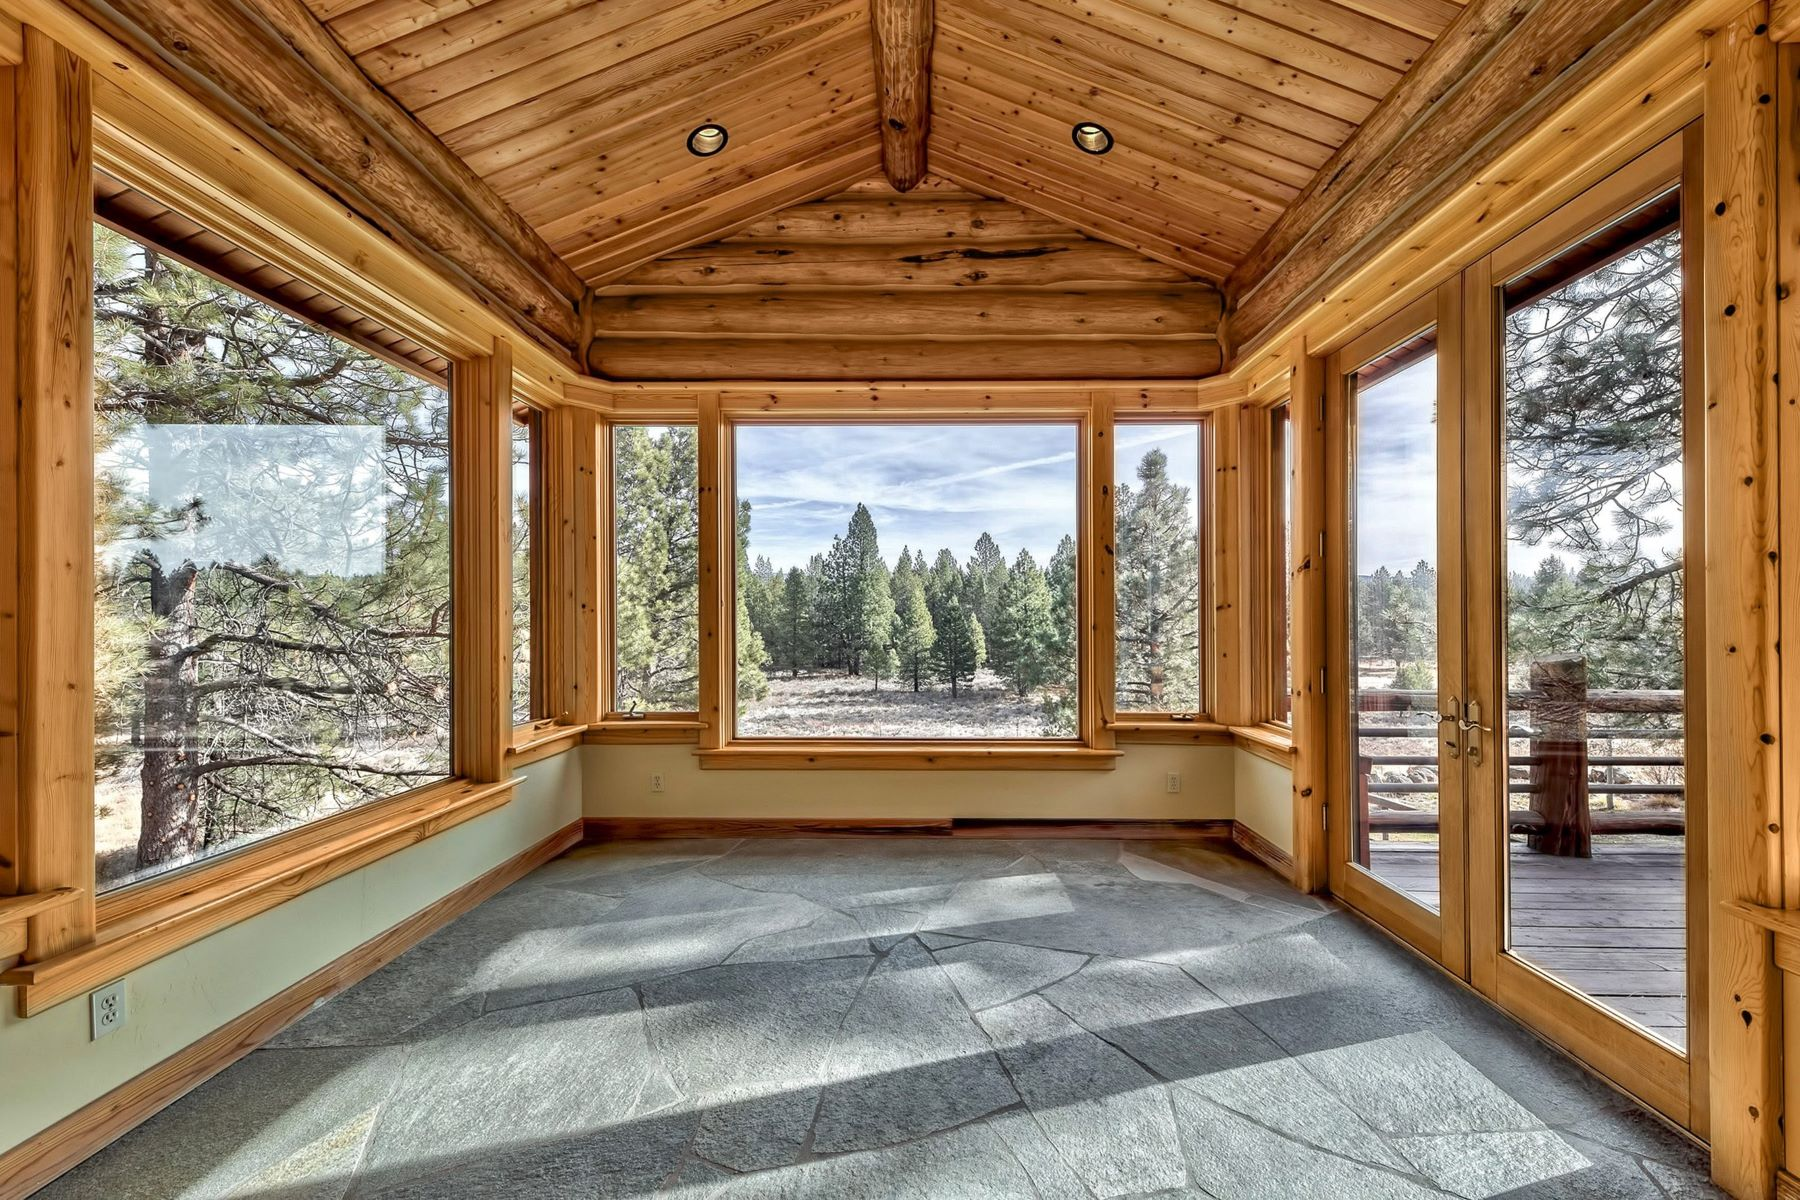 Additional photo for property listing at 12605 Prosser Dam Road, Truckee, Ca 96161 12605 Prosser Dam Road Truckee, California 96161 United States